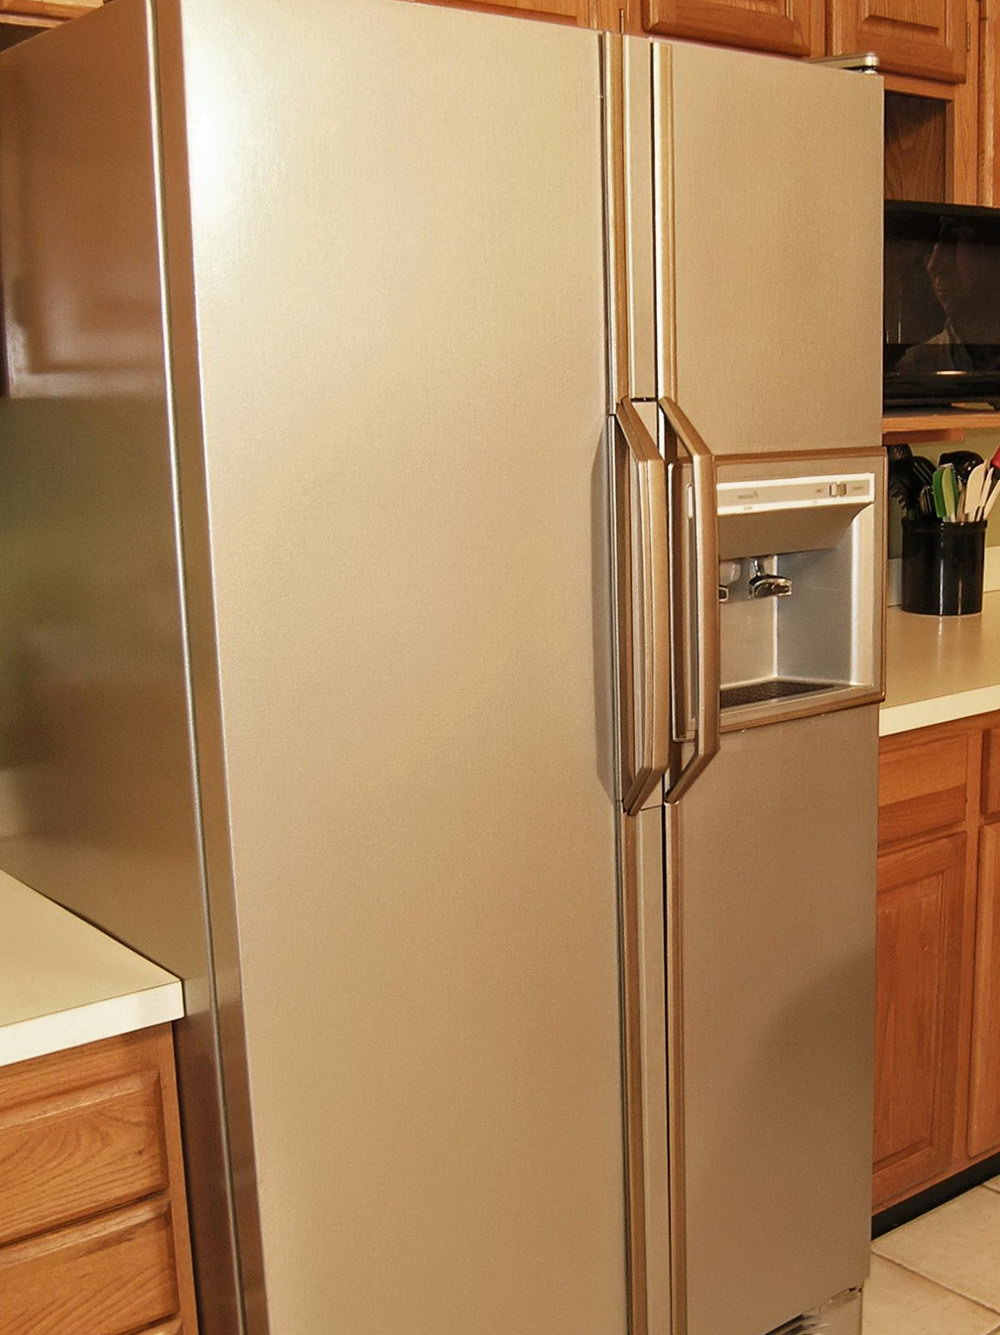 What Color To Paint Kitchen Cabinets With Stainless Steel Appliances